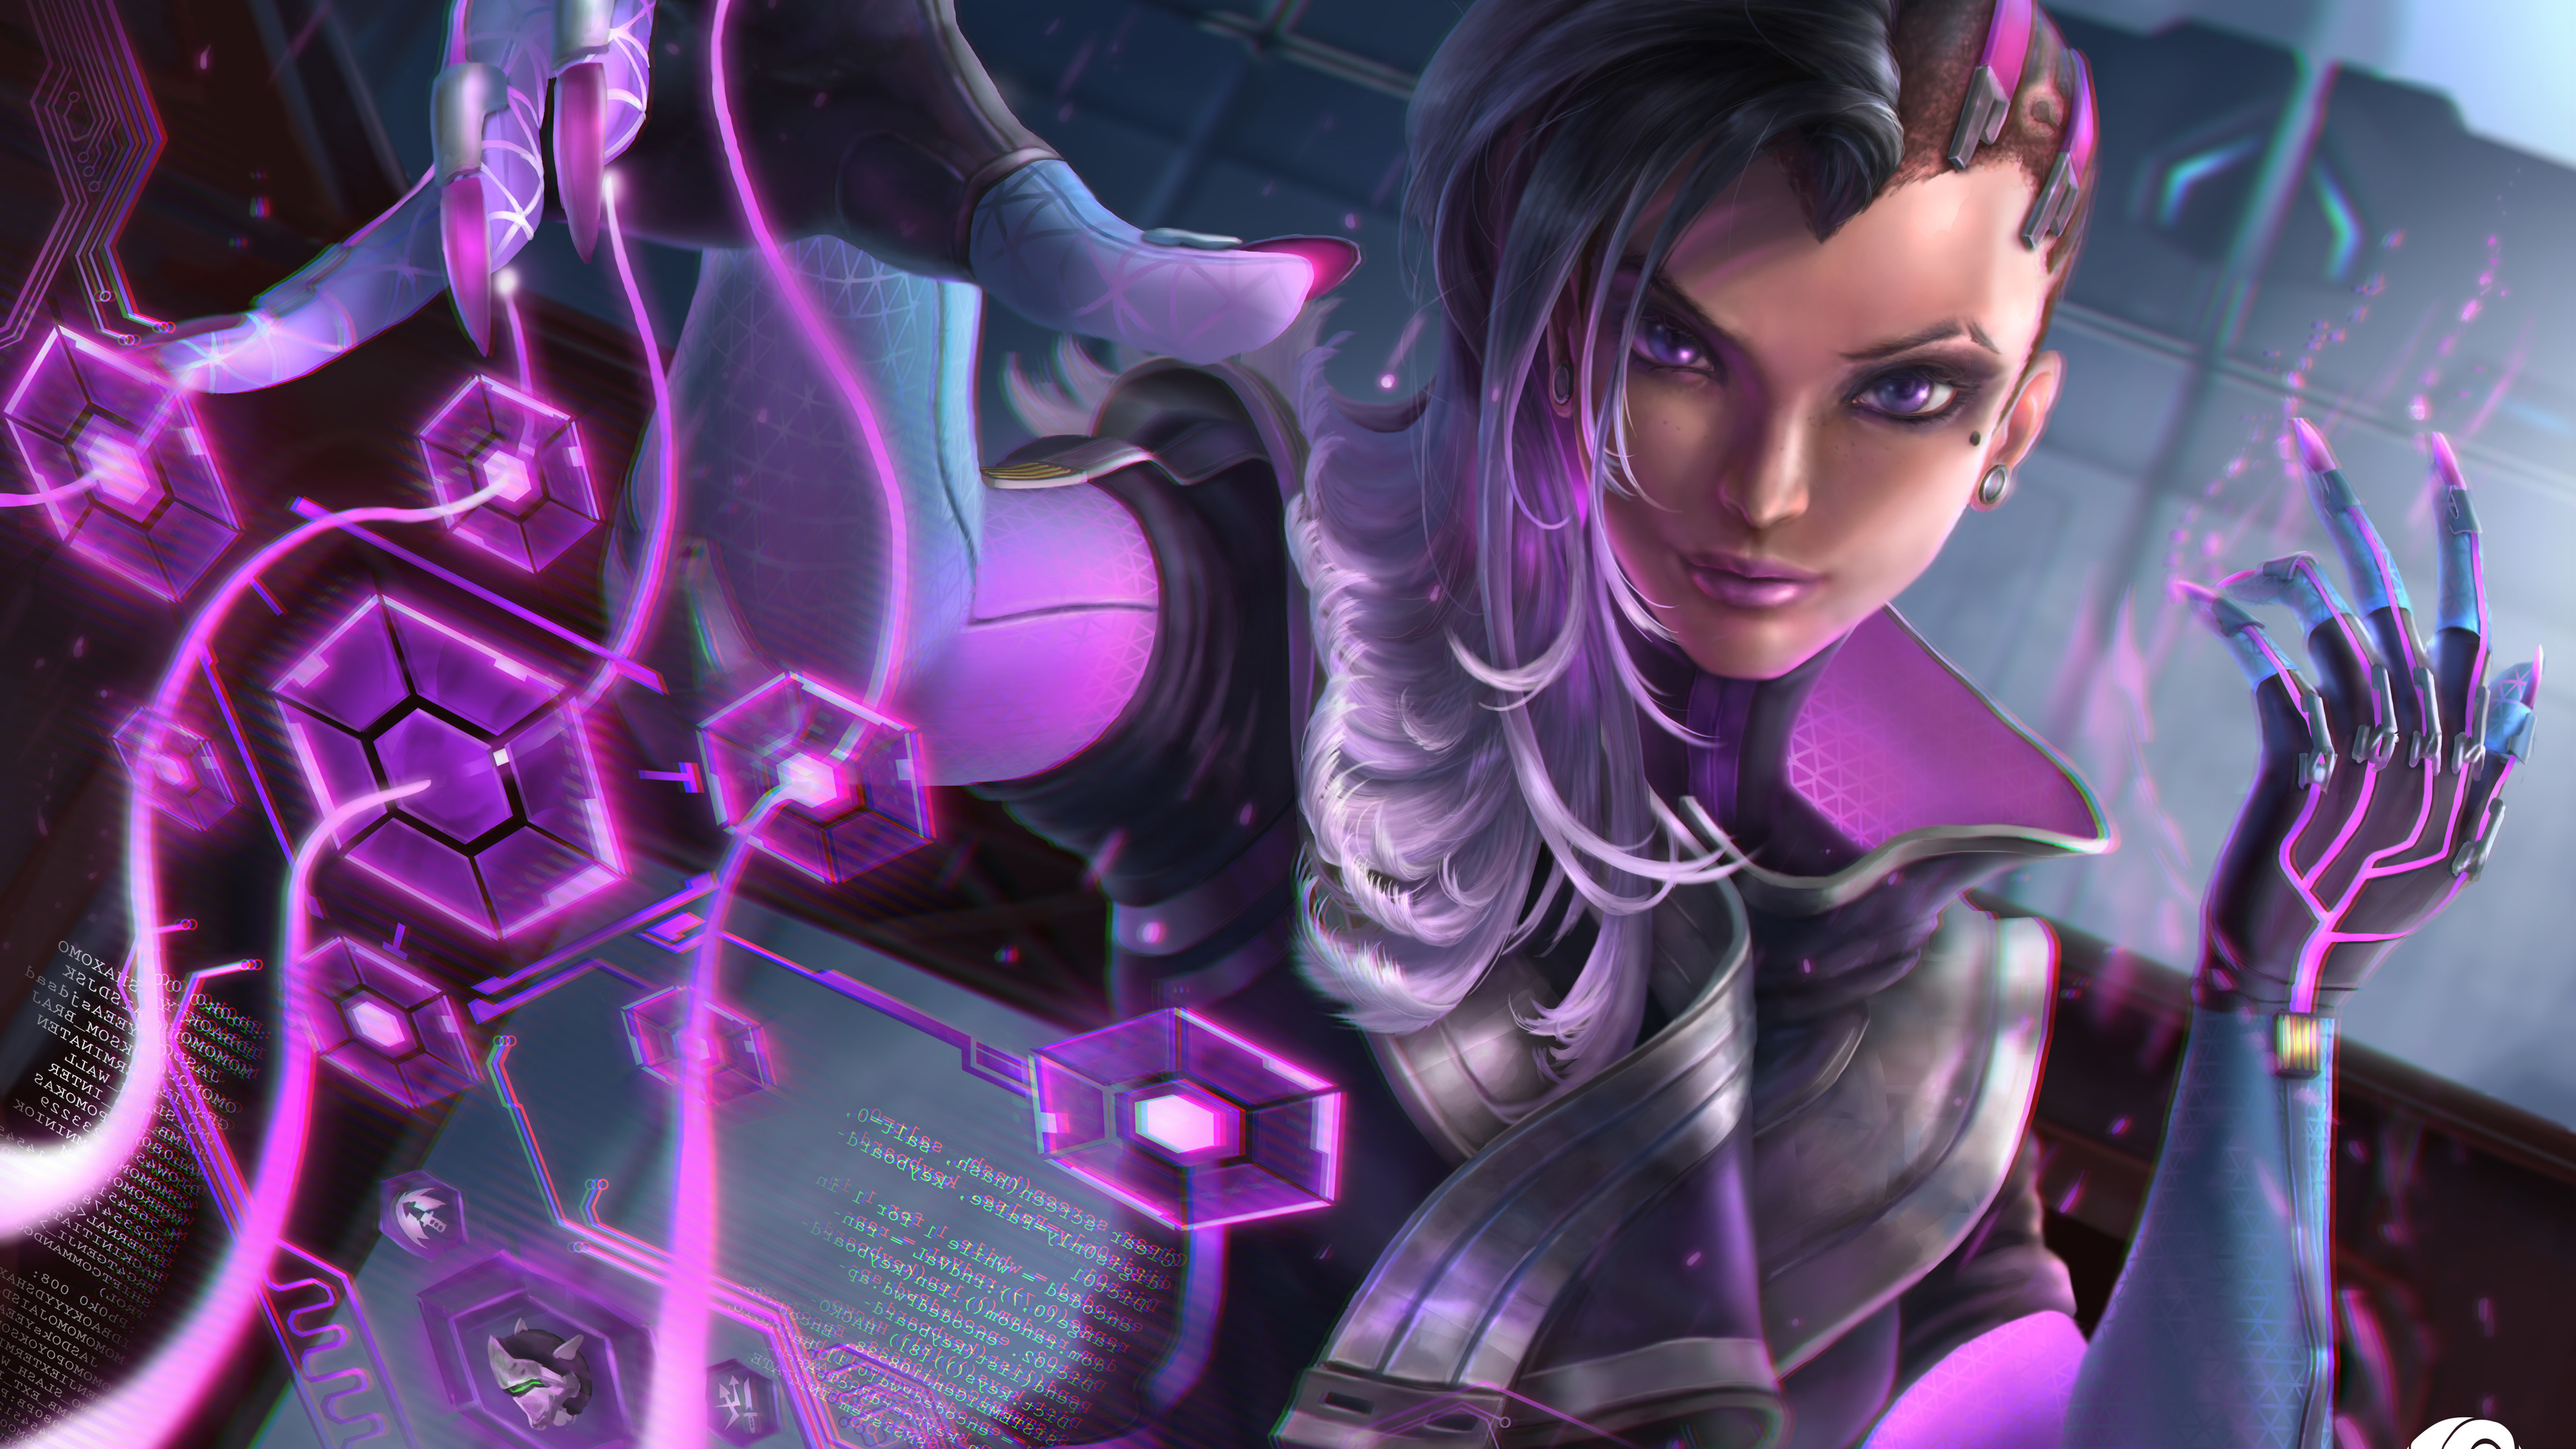 2048x2048 Sombra Overwatch Hd Ipad Air Hd 4k Wallpapers: Sombra Overwatch Art 5k Sombra Wallpapers, Overwatch